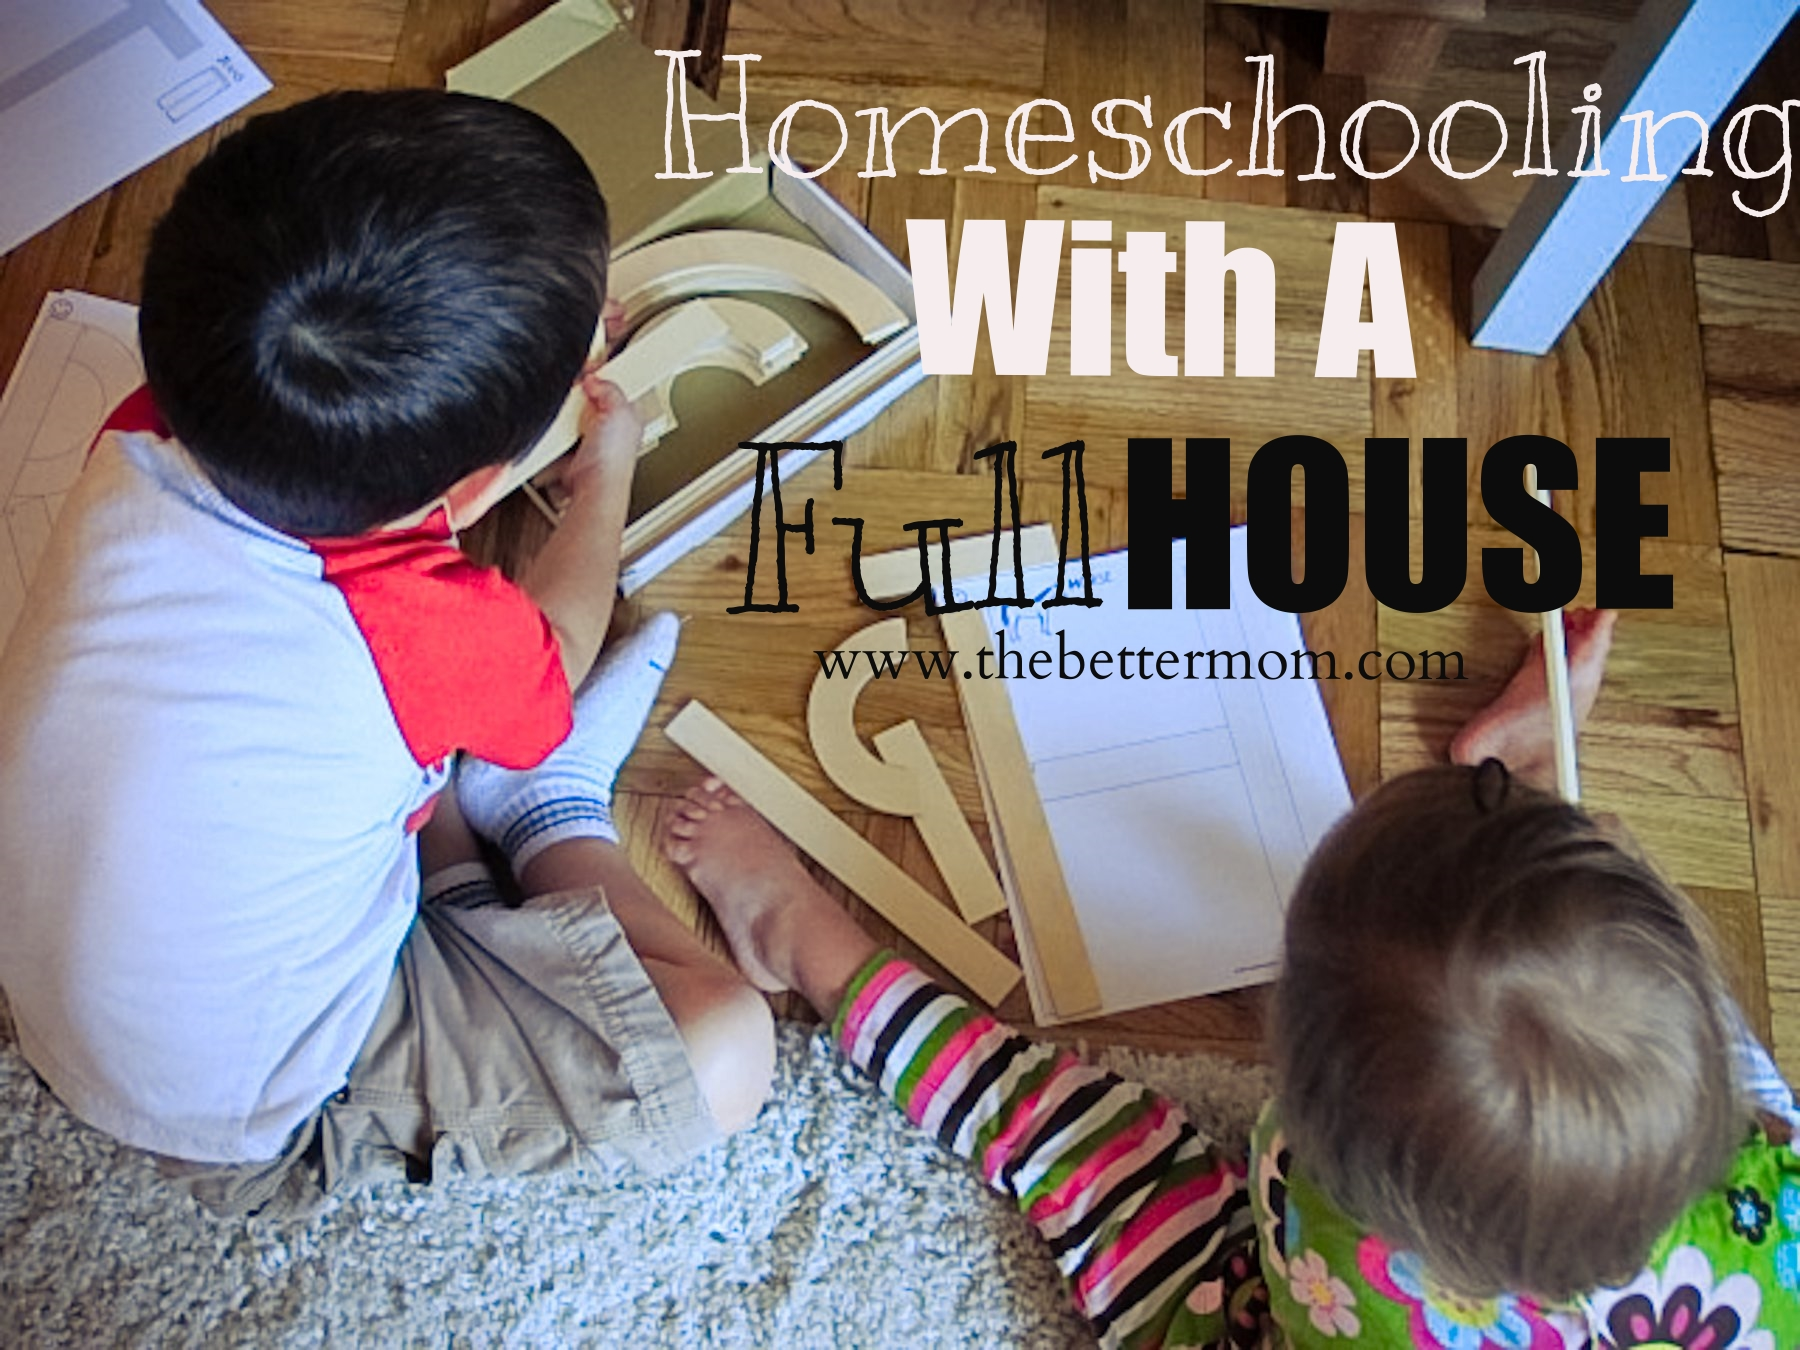 Are you homeschooling this year? With lots of ages under one roof, tis job can be quite complicated! Keep your sanity intact and peace active in your home with these ideas for how to tune in to your children and your family rhythms so you can have the best year yet!